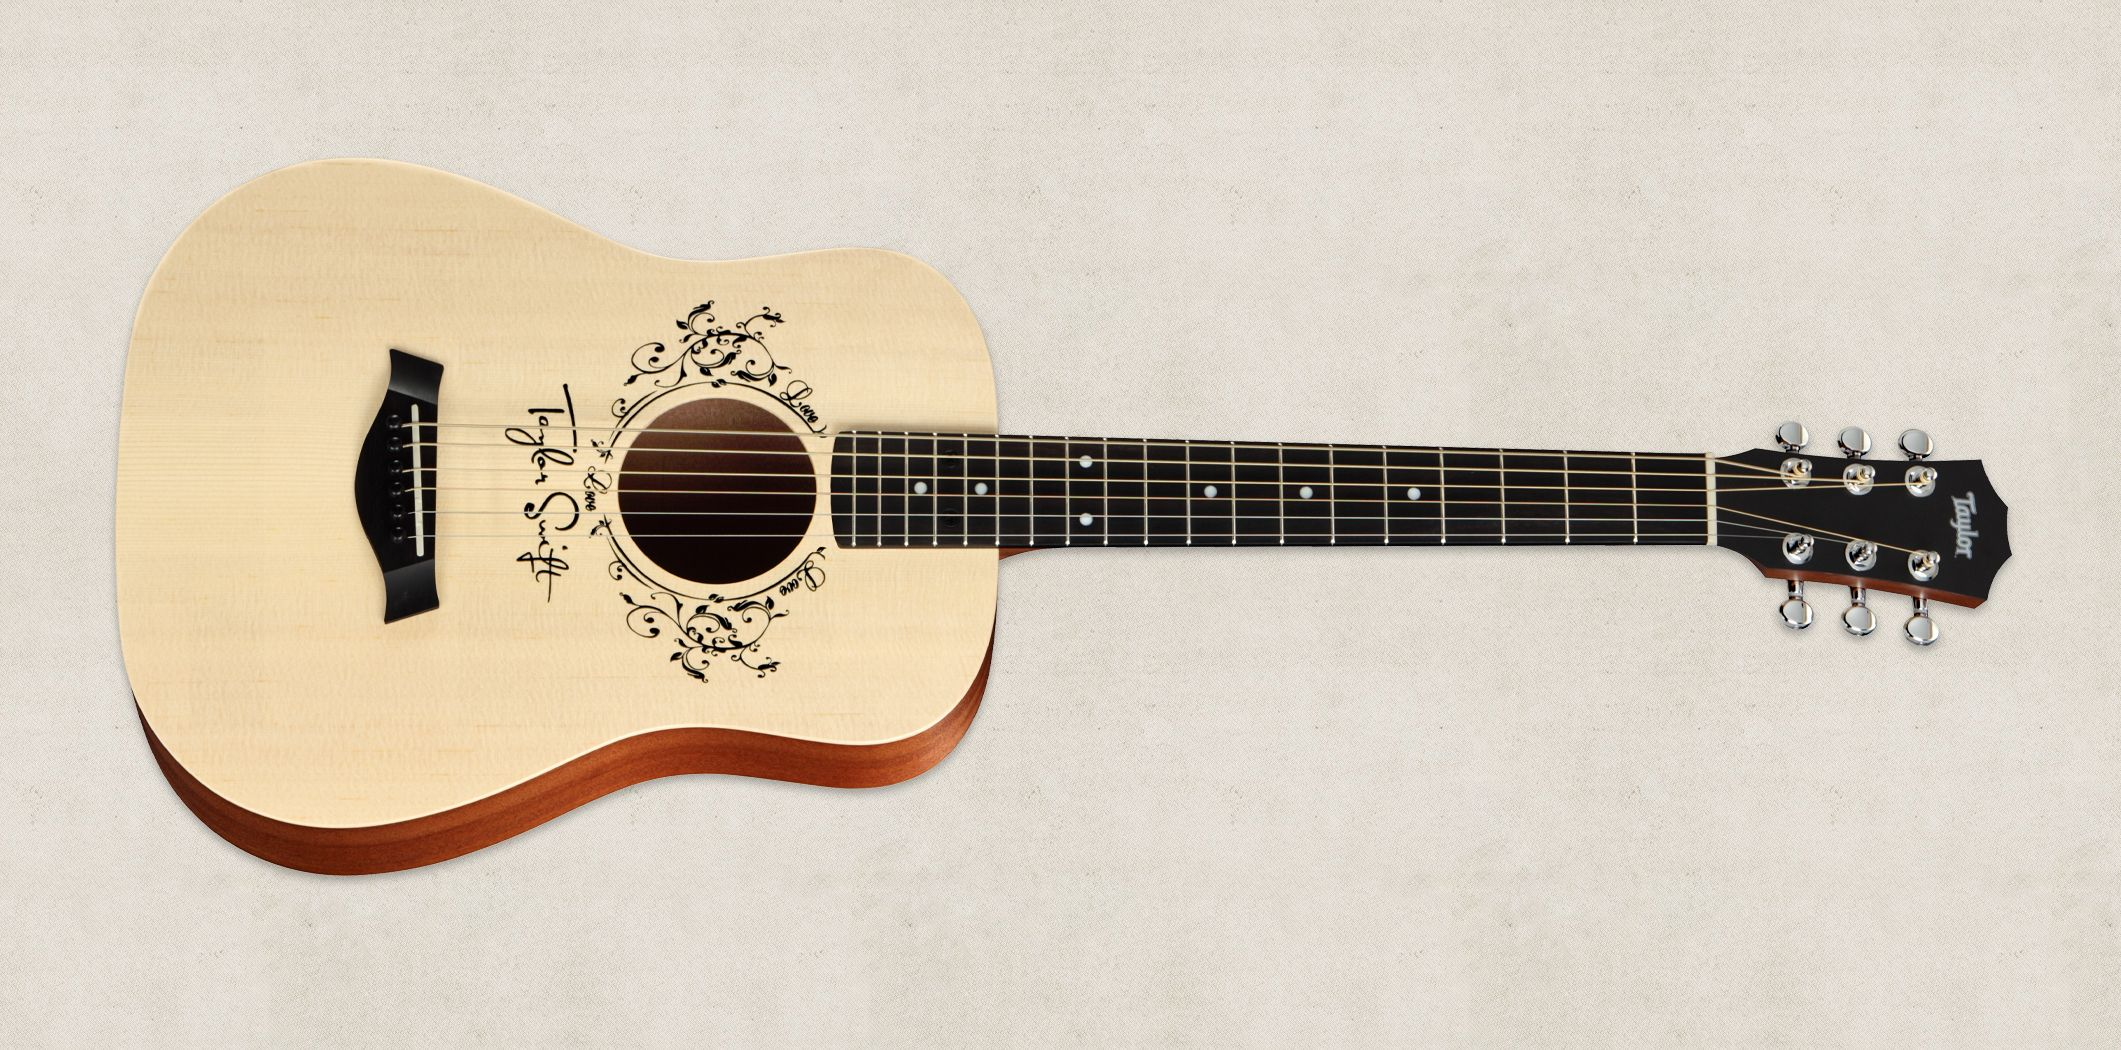 The Taylor Swift Baby Taylor Tsbt Guitar Was Inspired By Swift S Memories Of Writing Songs On Her Own Baby Tay Baby Taylor Taylor Swift Guitar Taylor Guitars